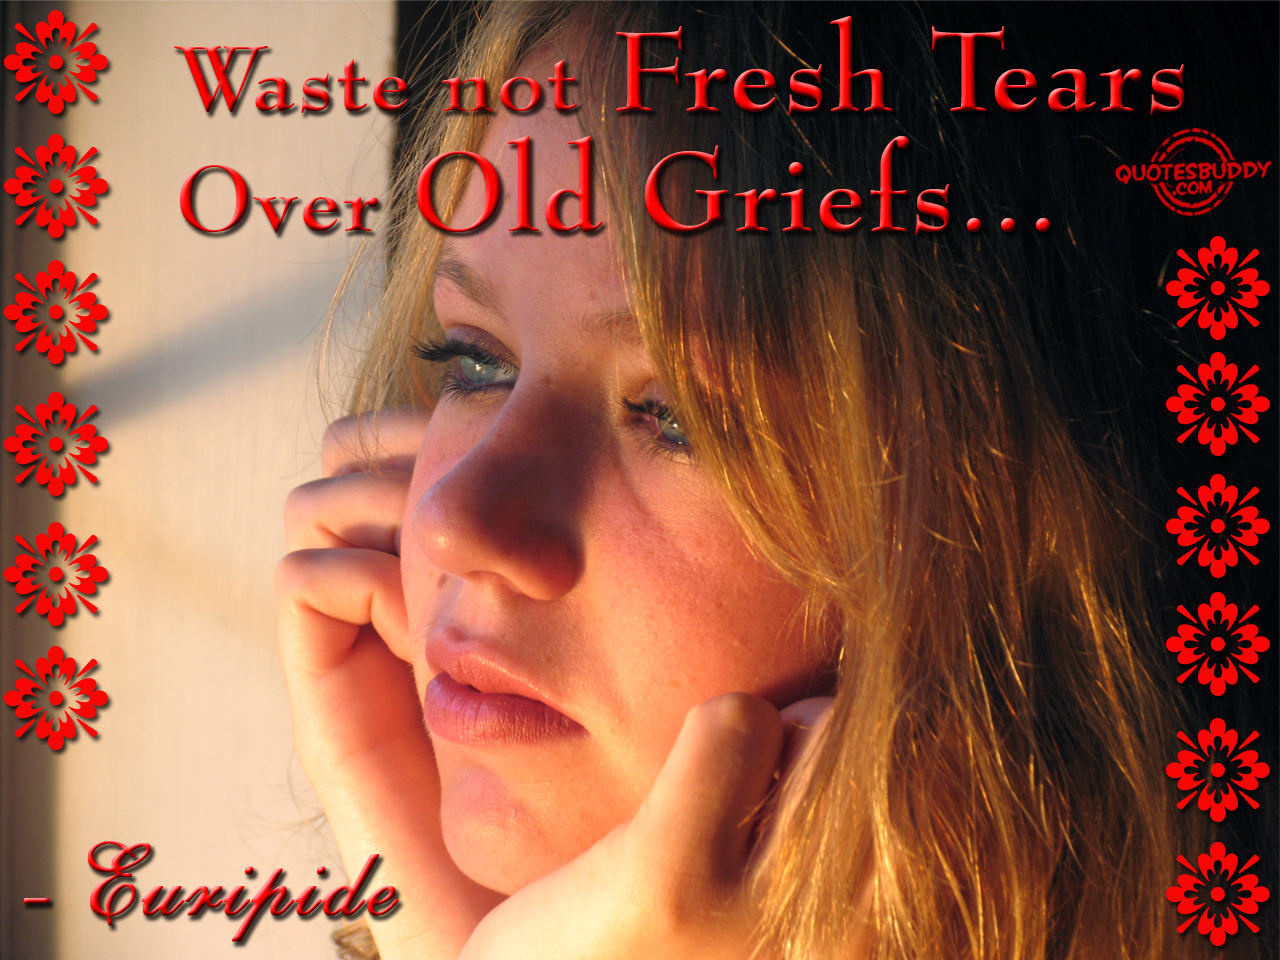 Waste Not Fresh Tears Over Old Griefs